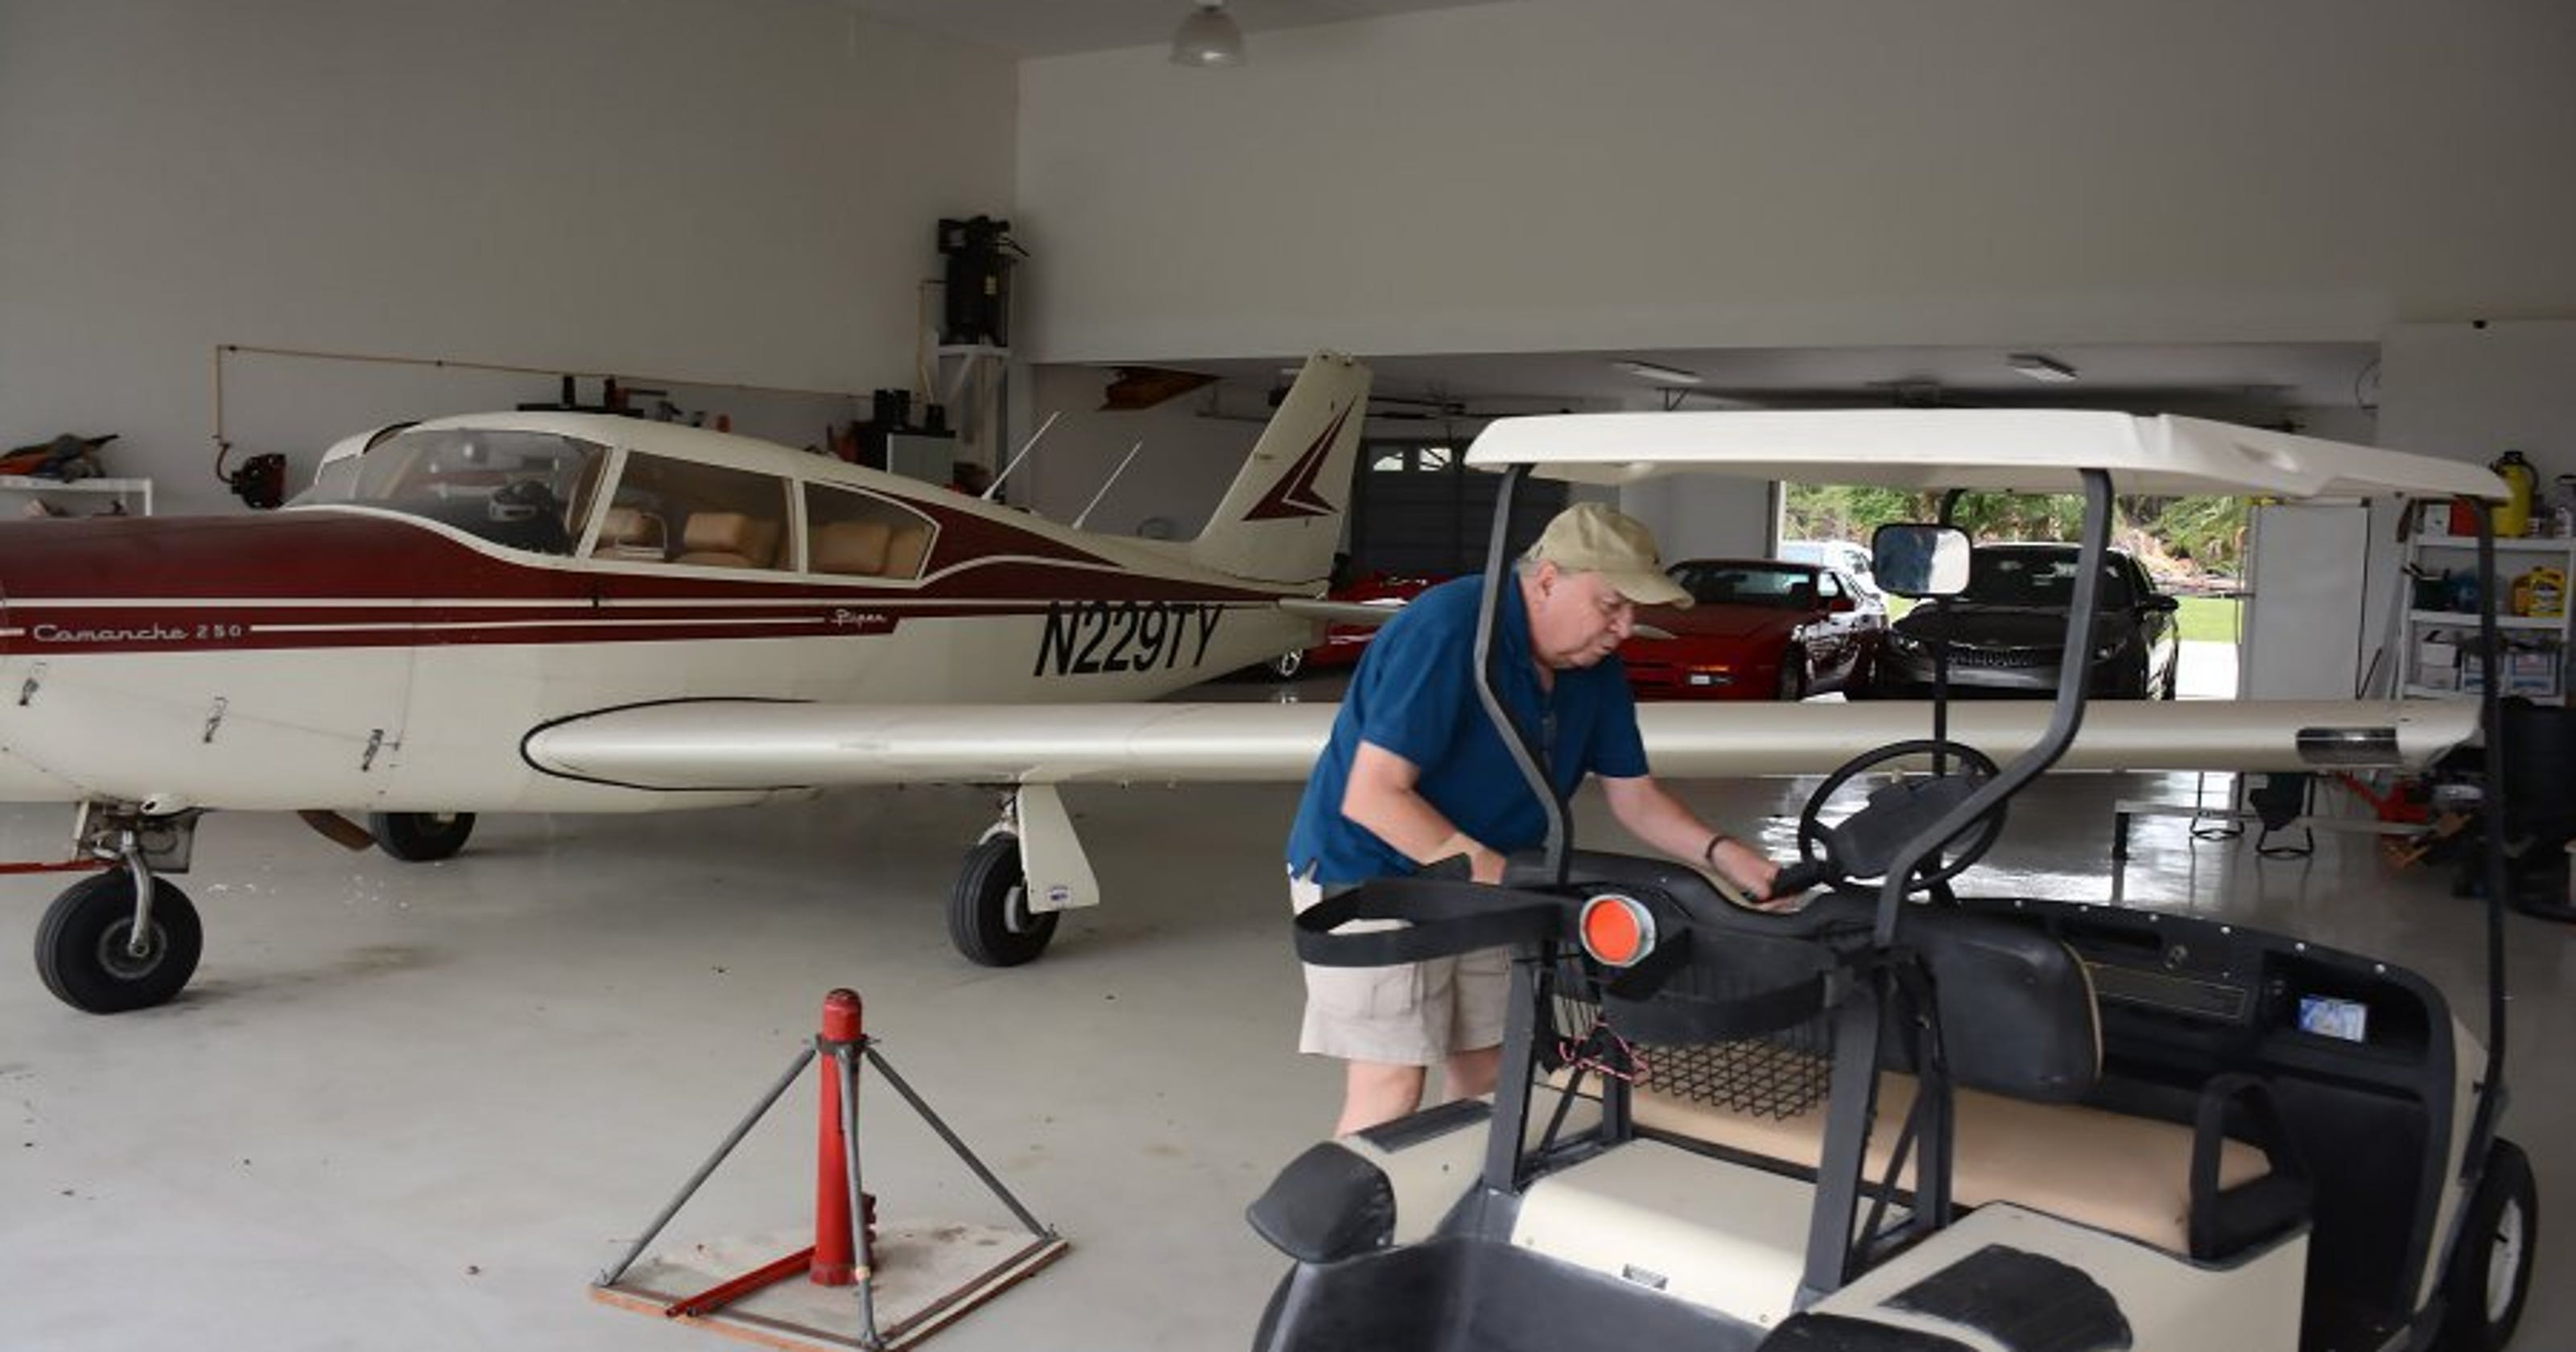 Aaa Naples Fl >> Wing South Airpark: A home where the sky's the limit